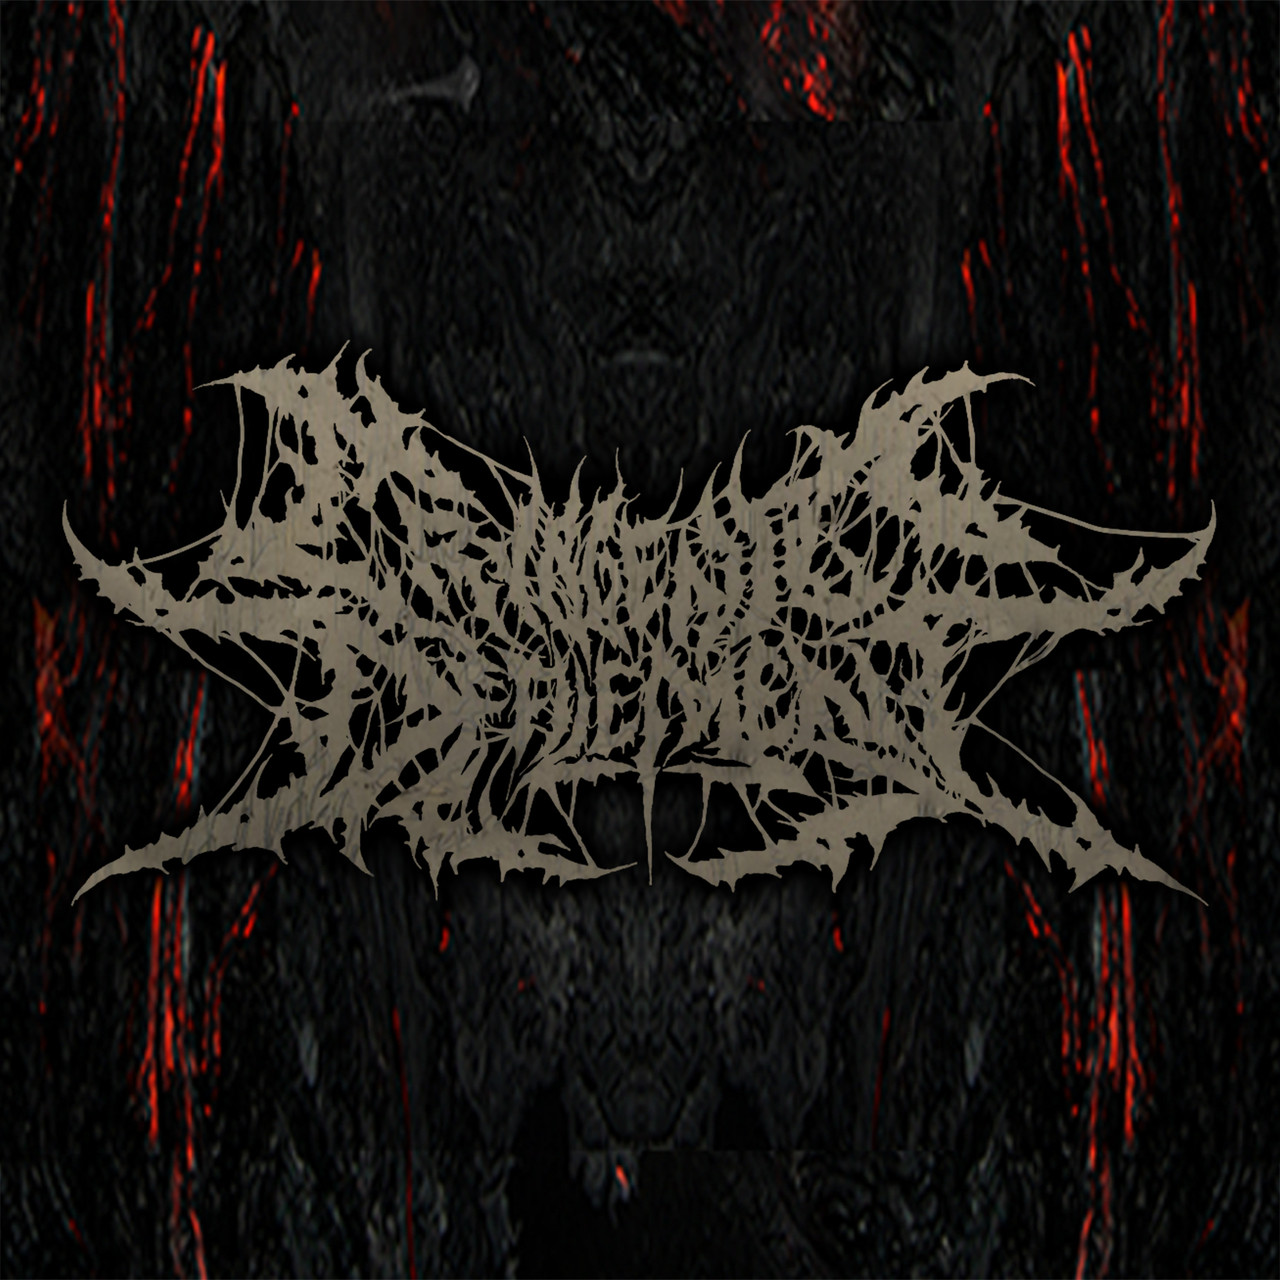 Cryogenic Defilement